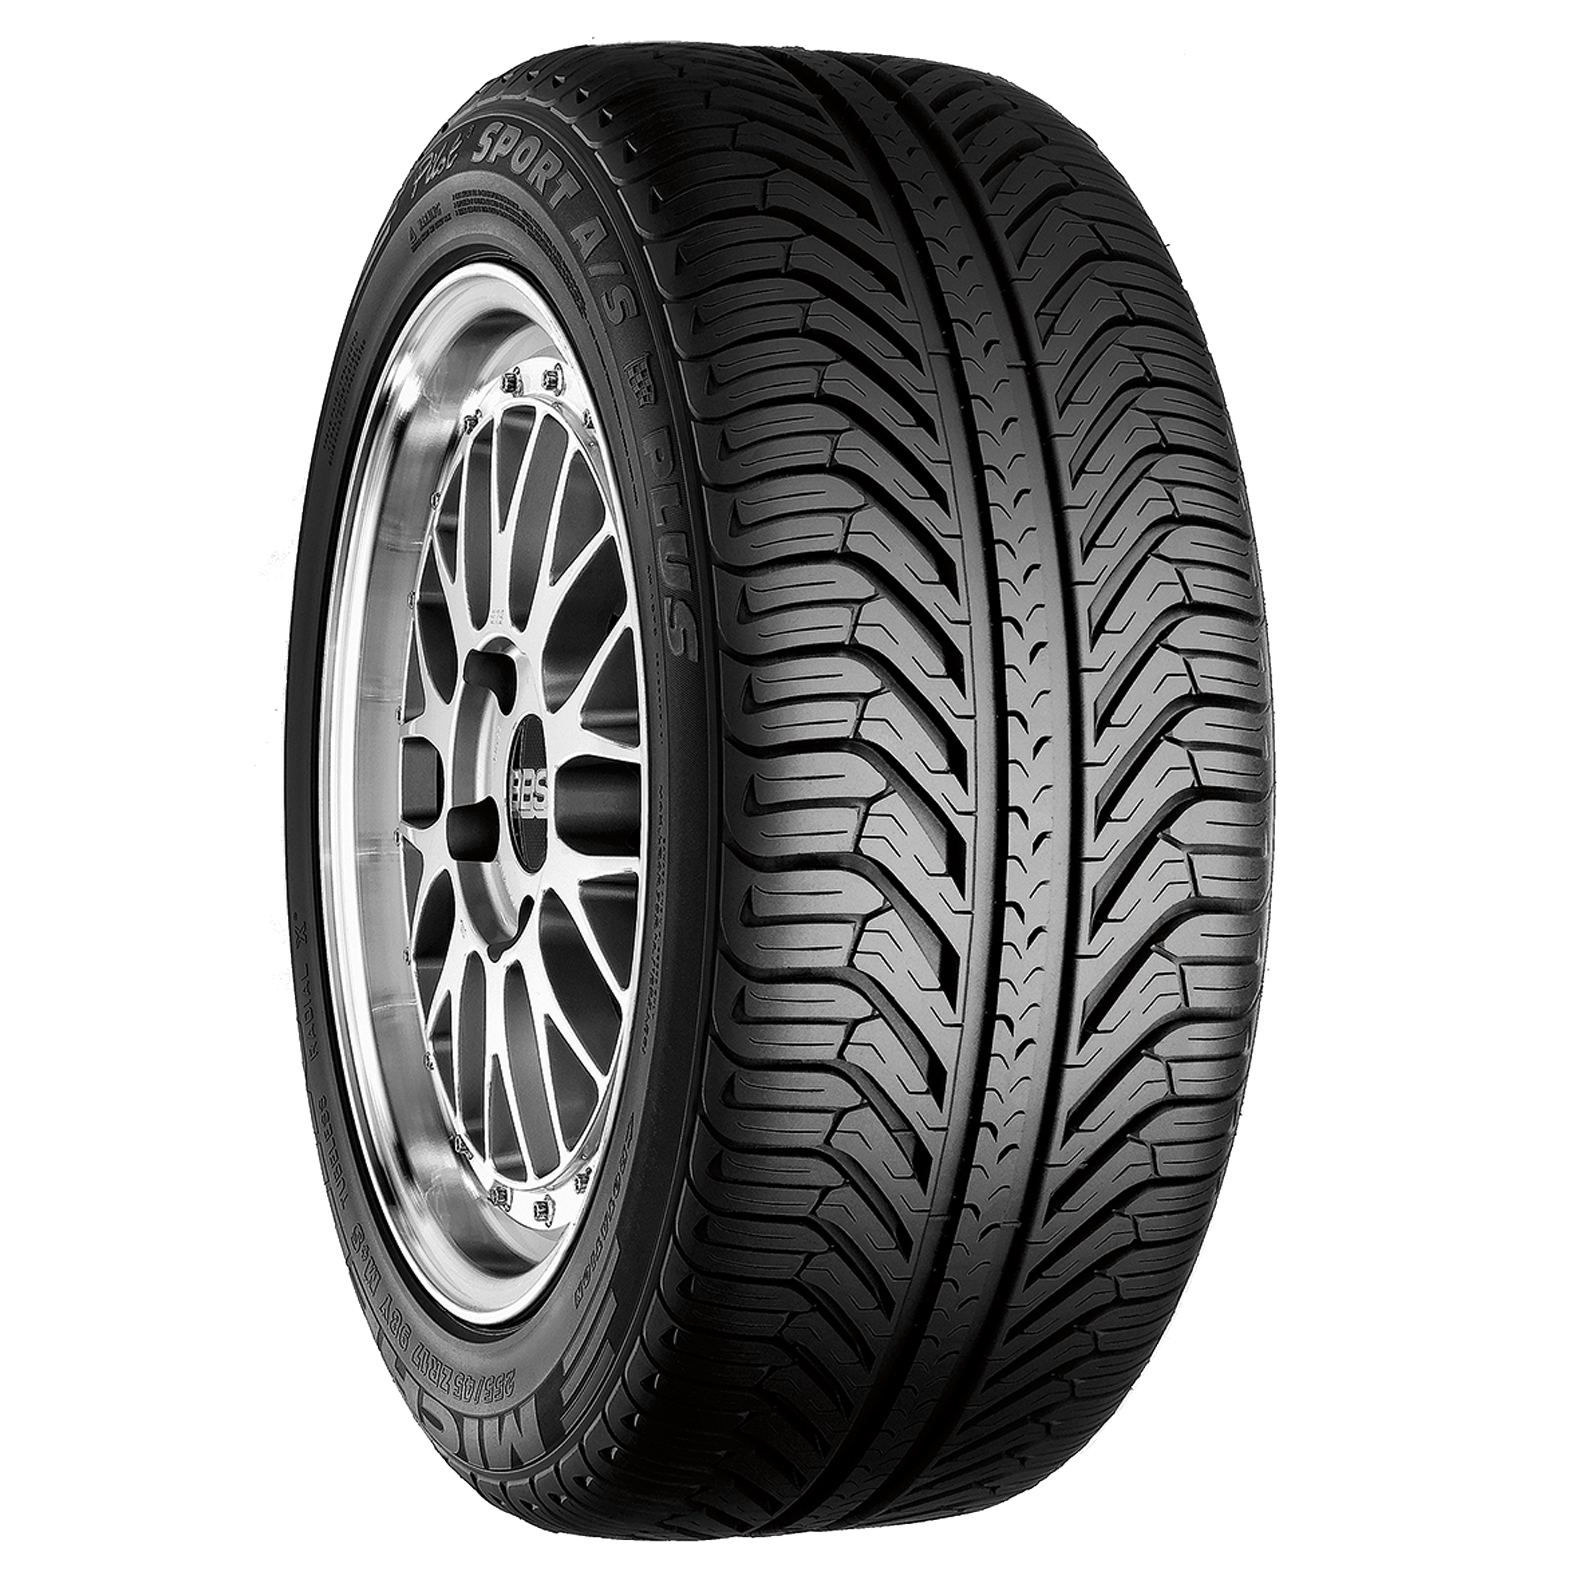 Michelin PILOT SPORT A/S PLUS tire - angle